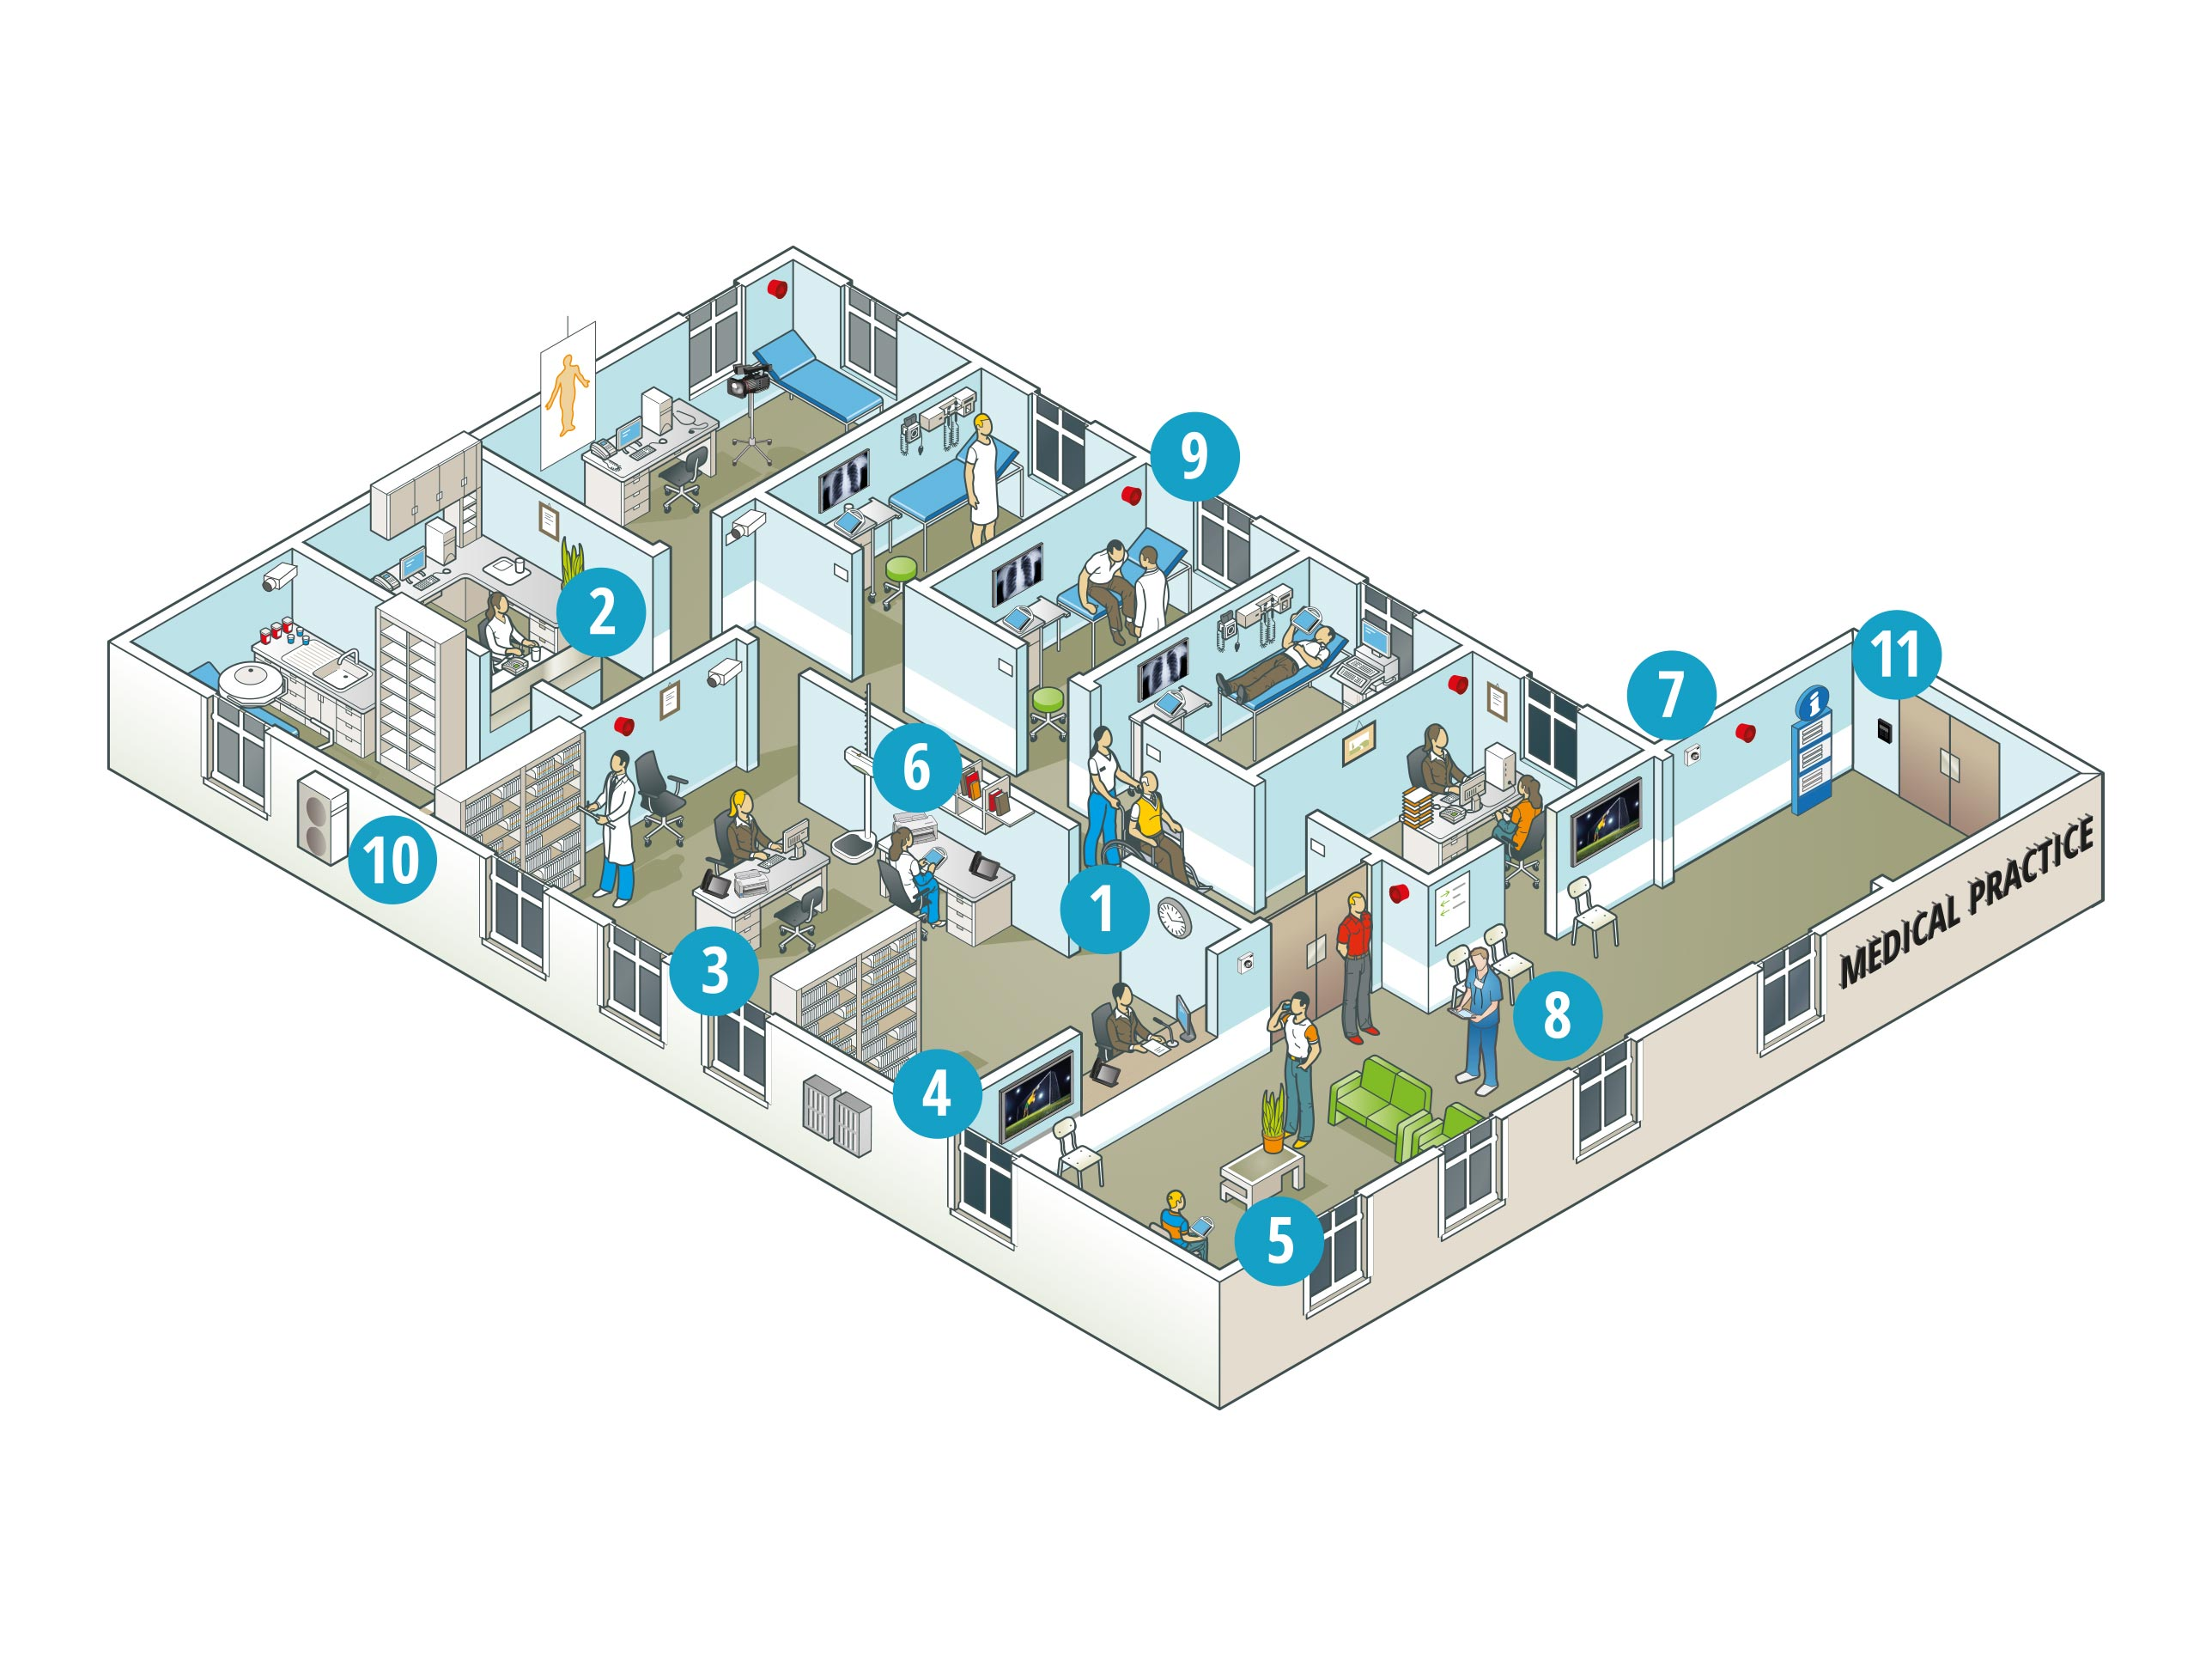 How do Panasonic solutions support medical practices?